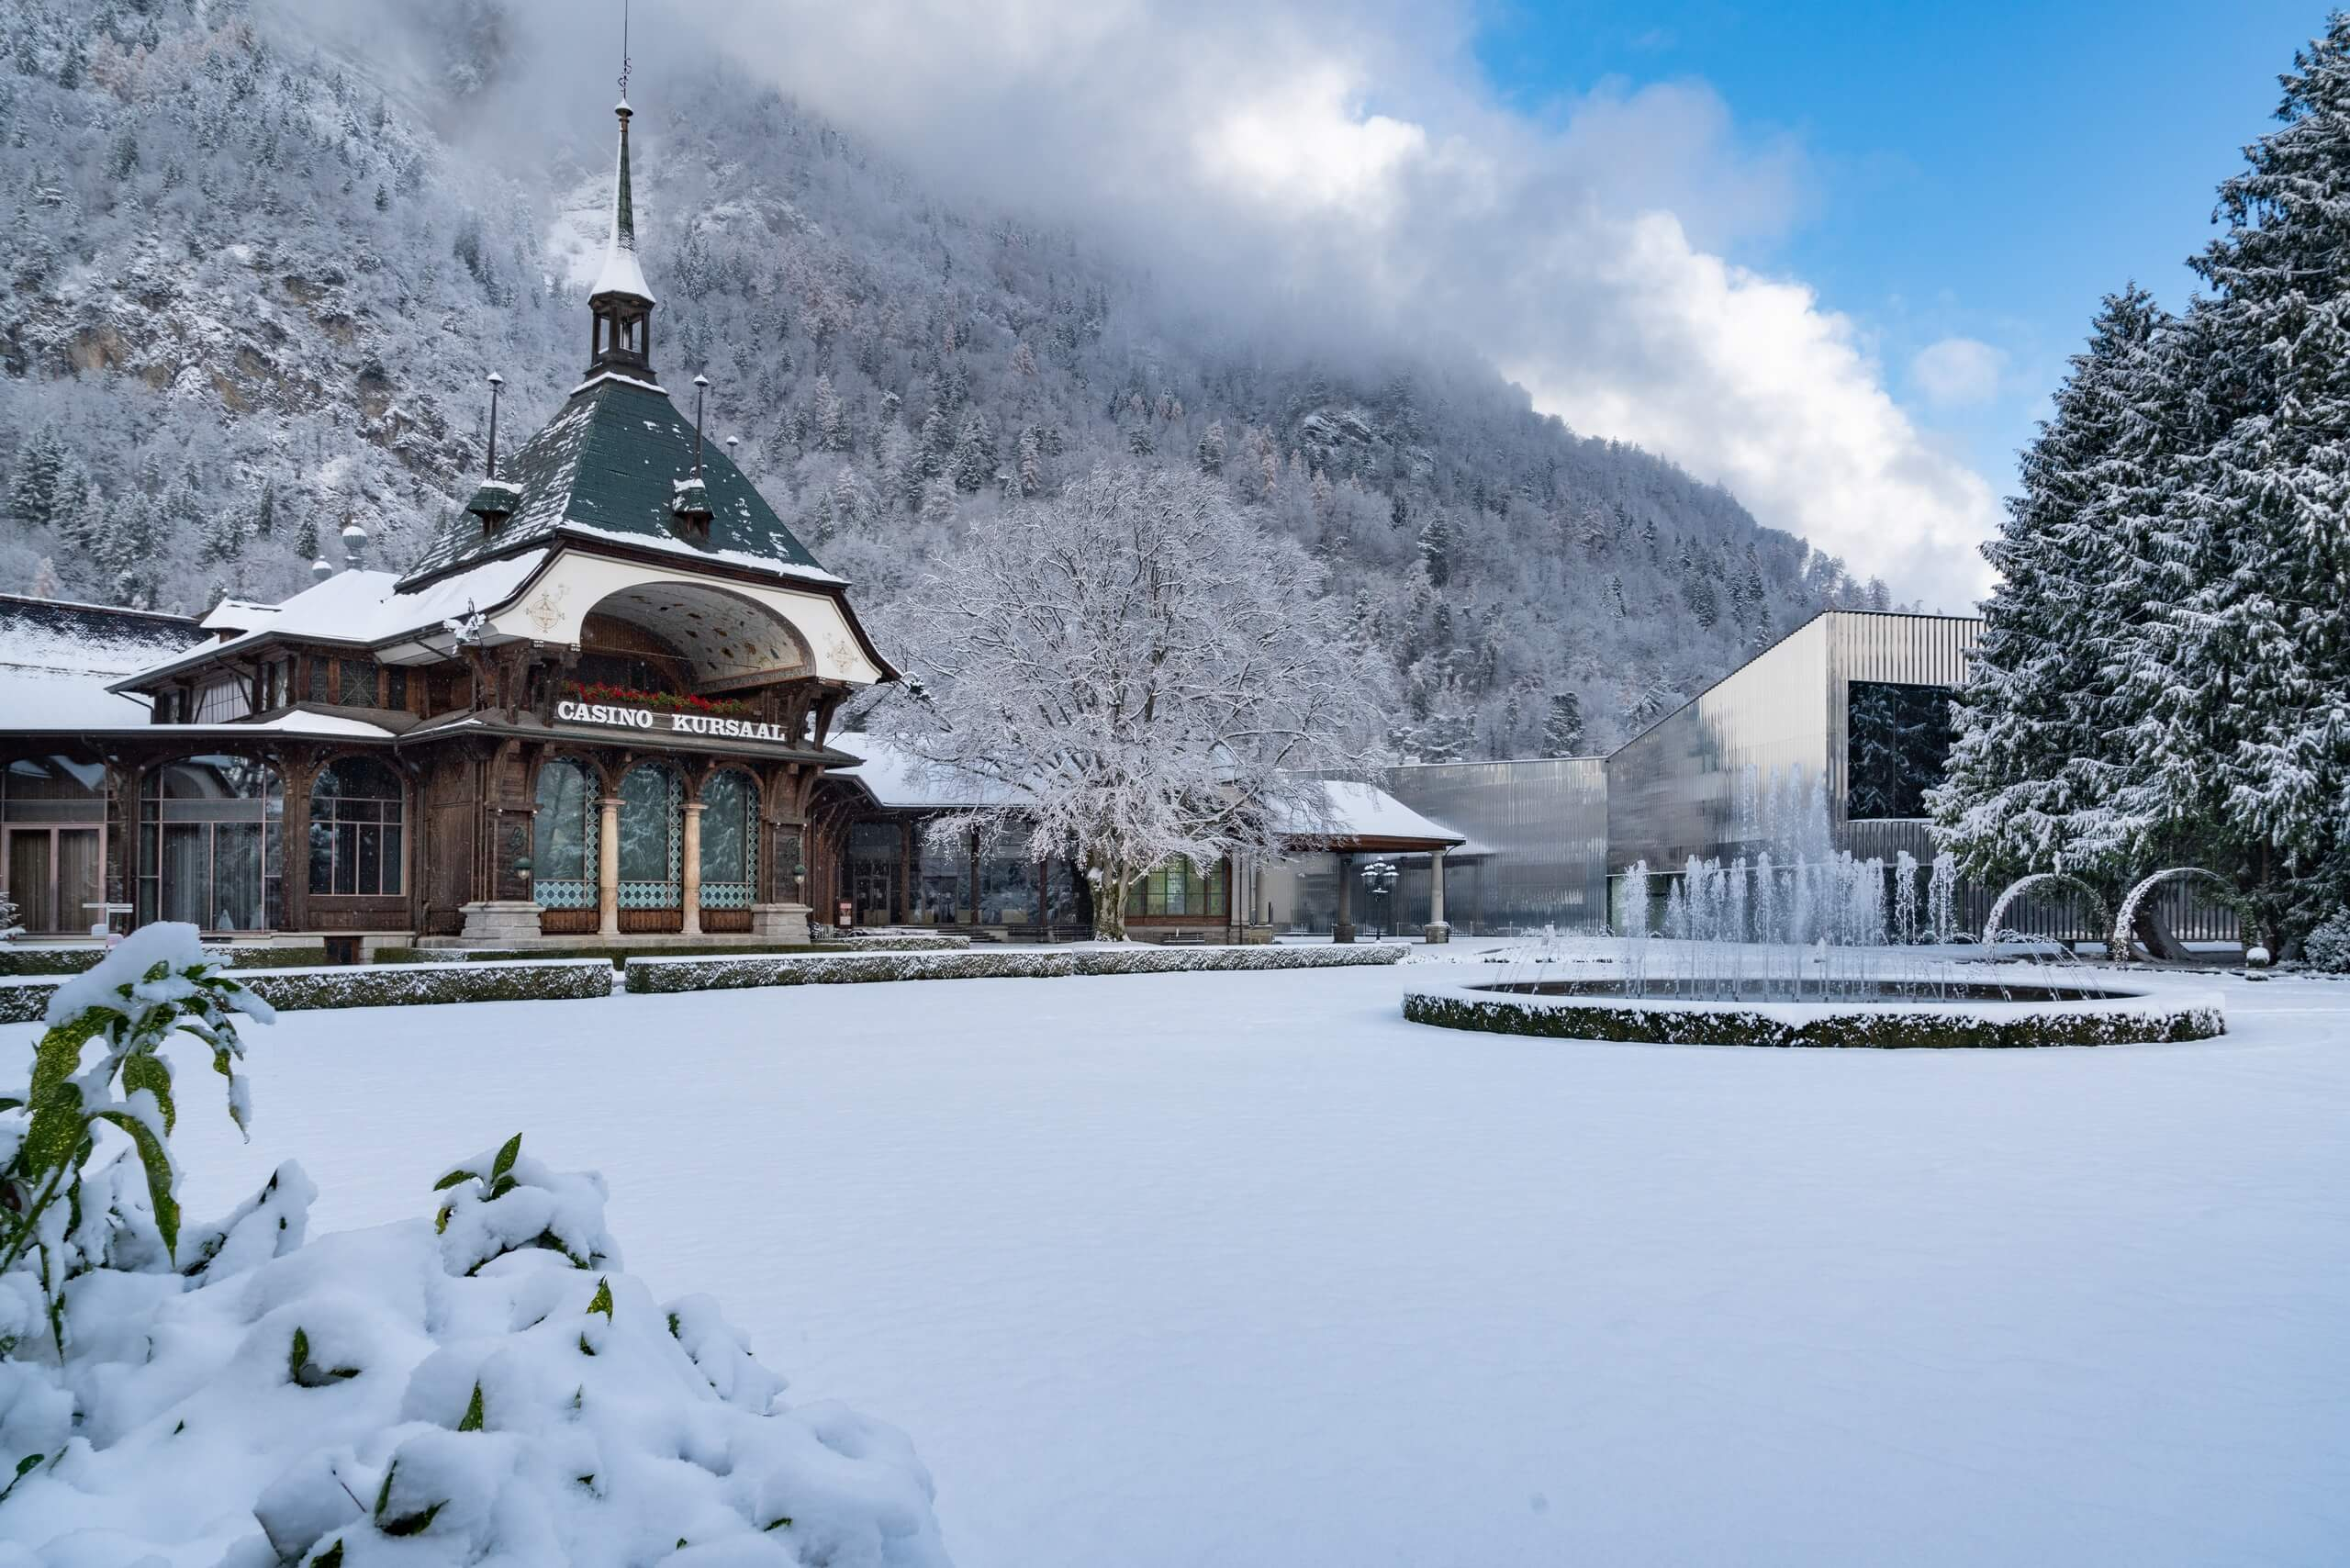 interlaken-kursaal-schnee-winter